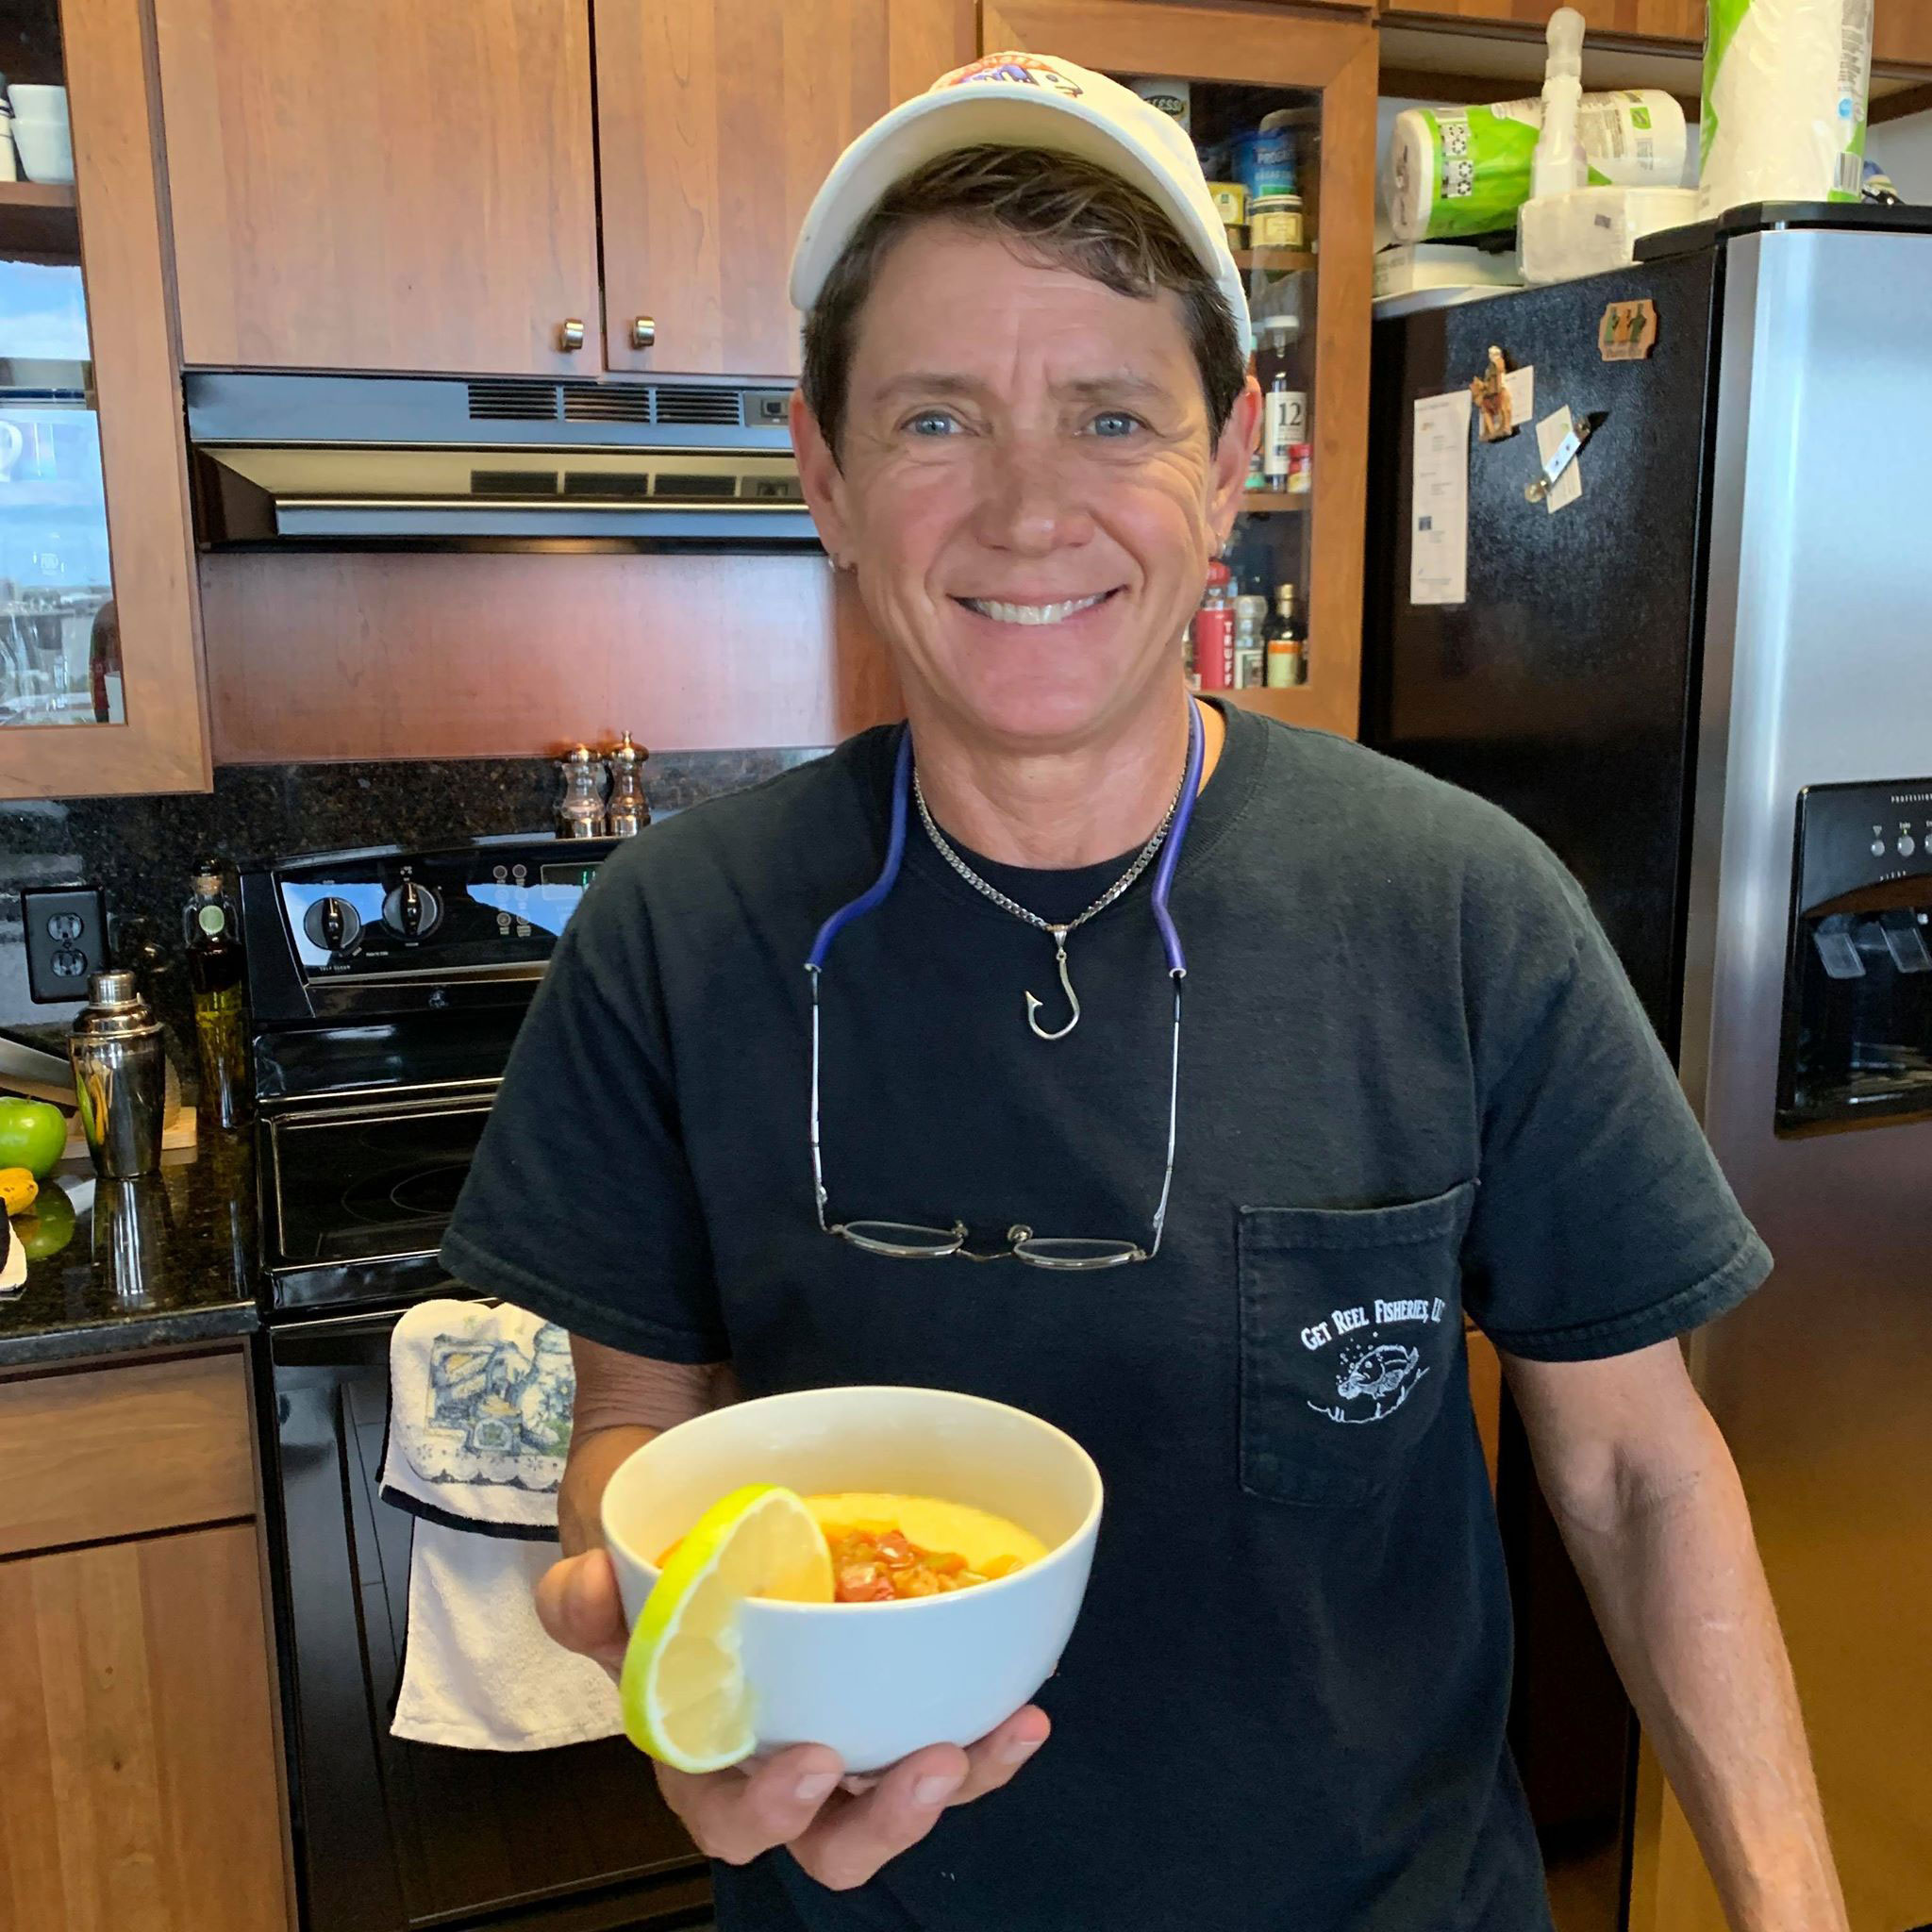 Margaret Covello of Fishmonger Approved Cooked and Served up the Drunken Lobster 'n Grits During the St. Petersburg Foodies Podcast Episode 63